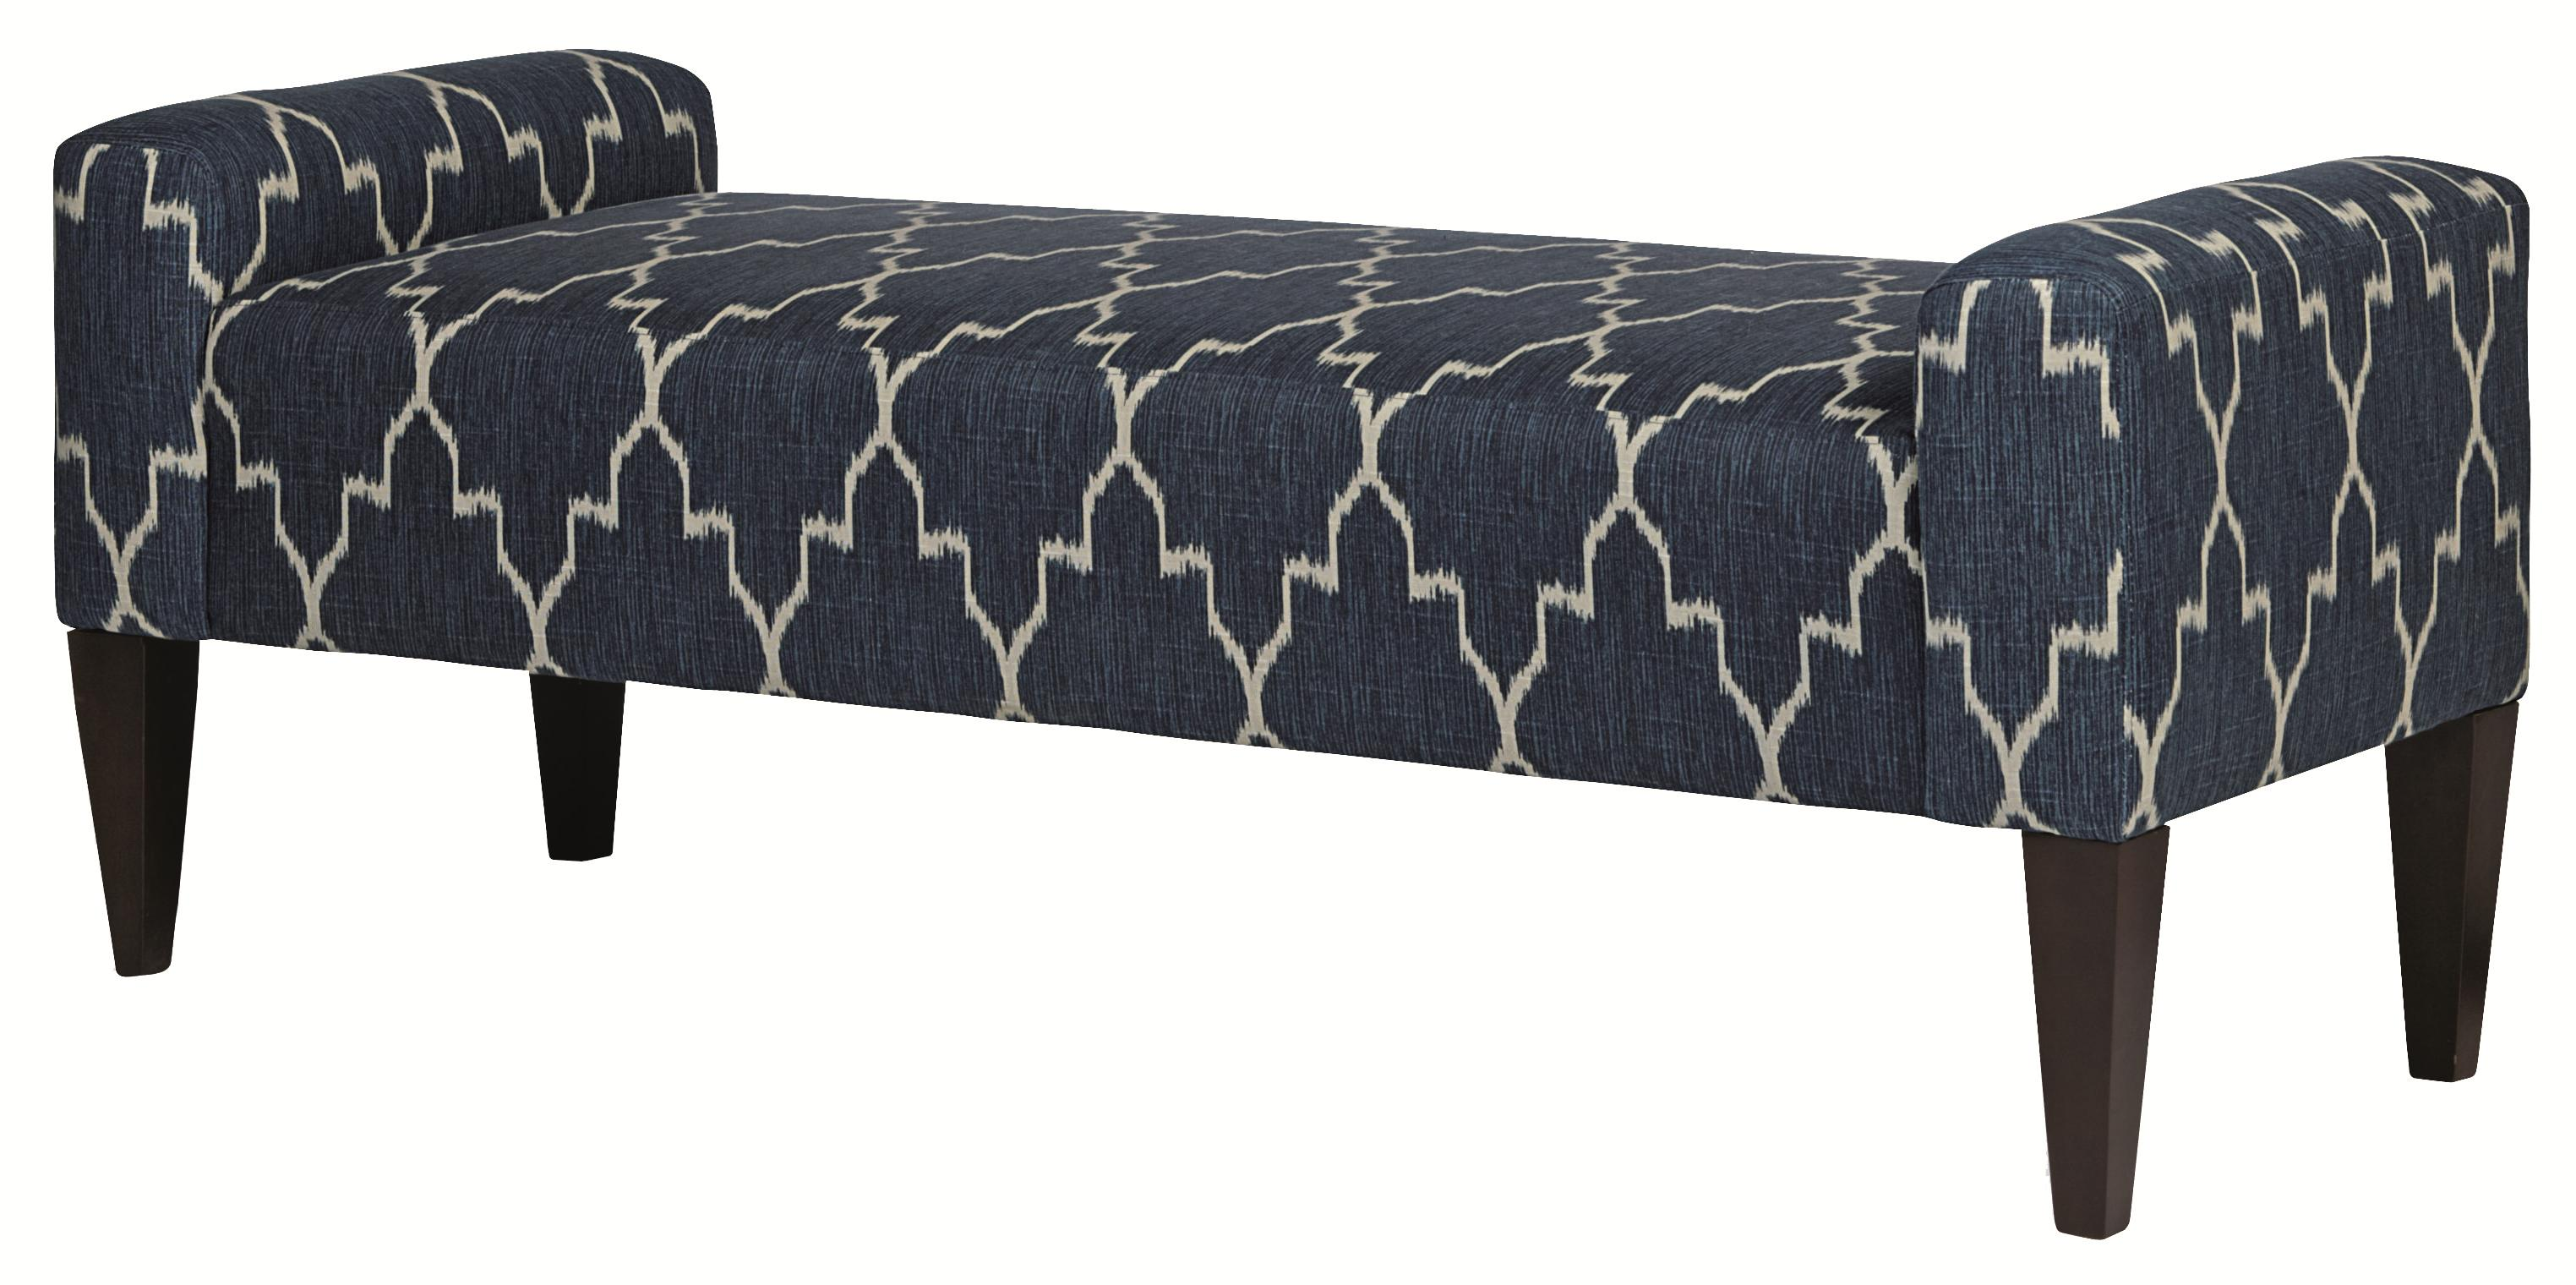 Upholstered Accents Sudbury Bench by Bernhardt at Baer's Furniture